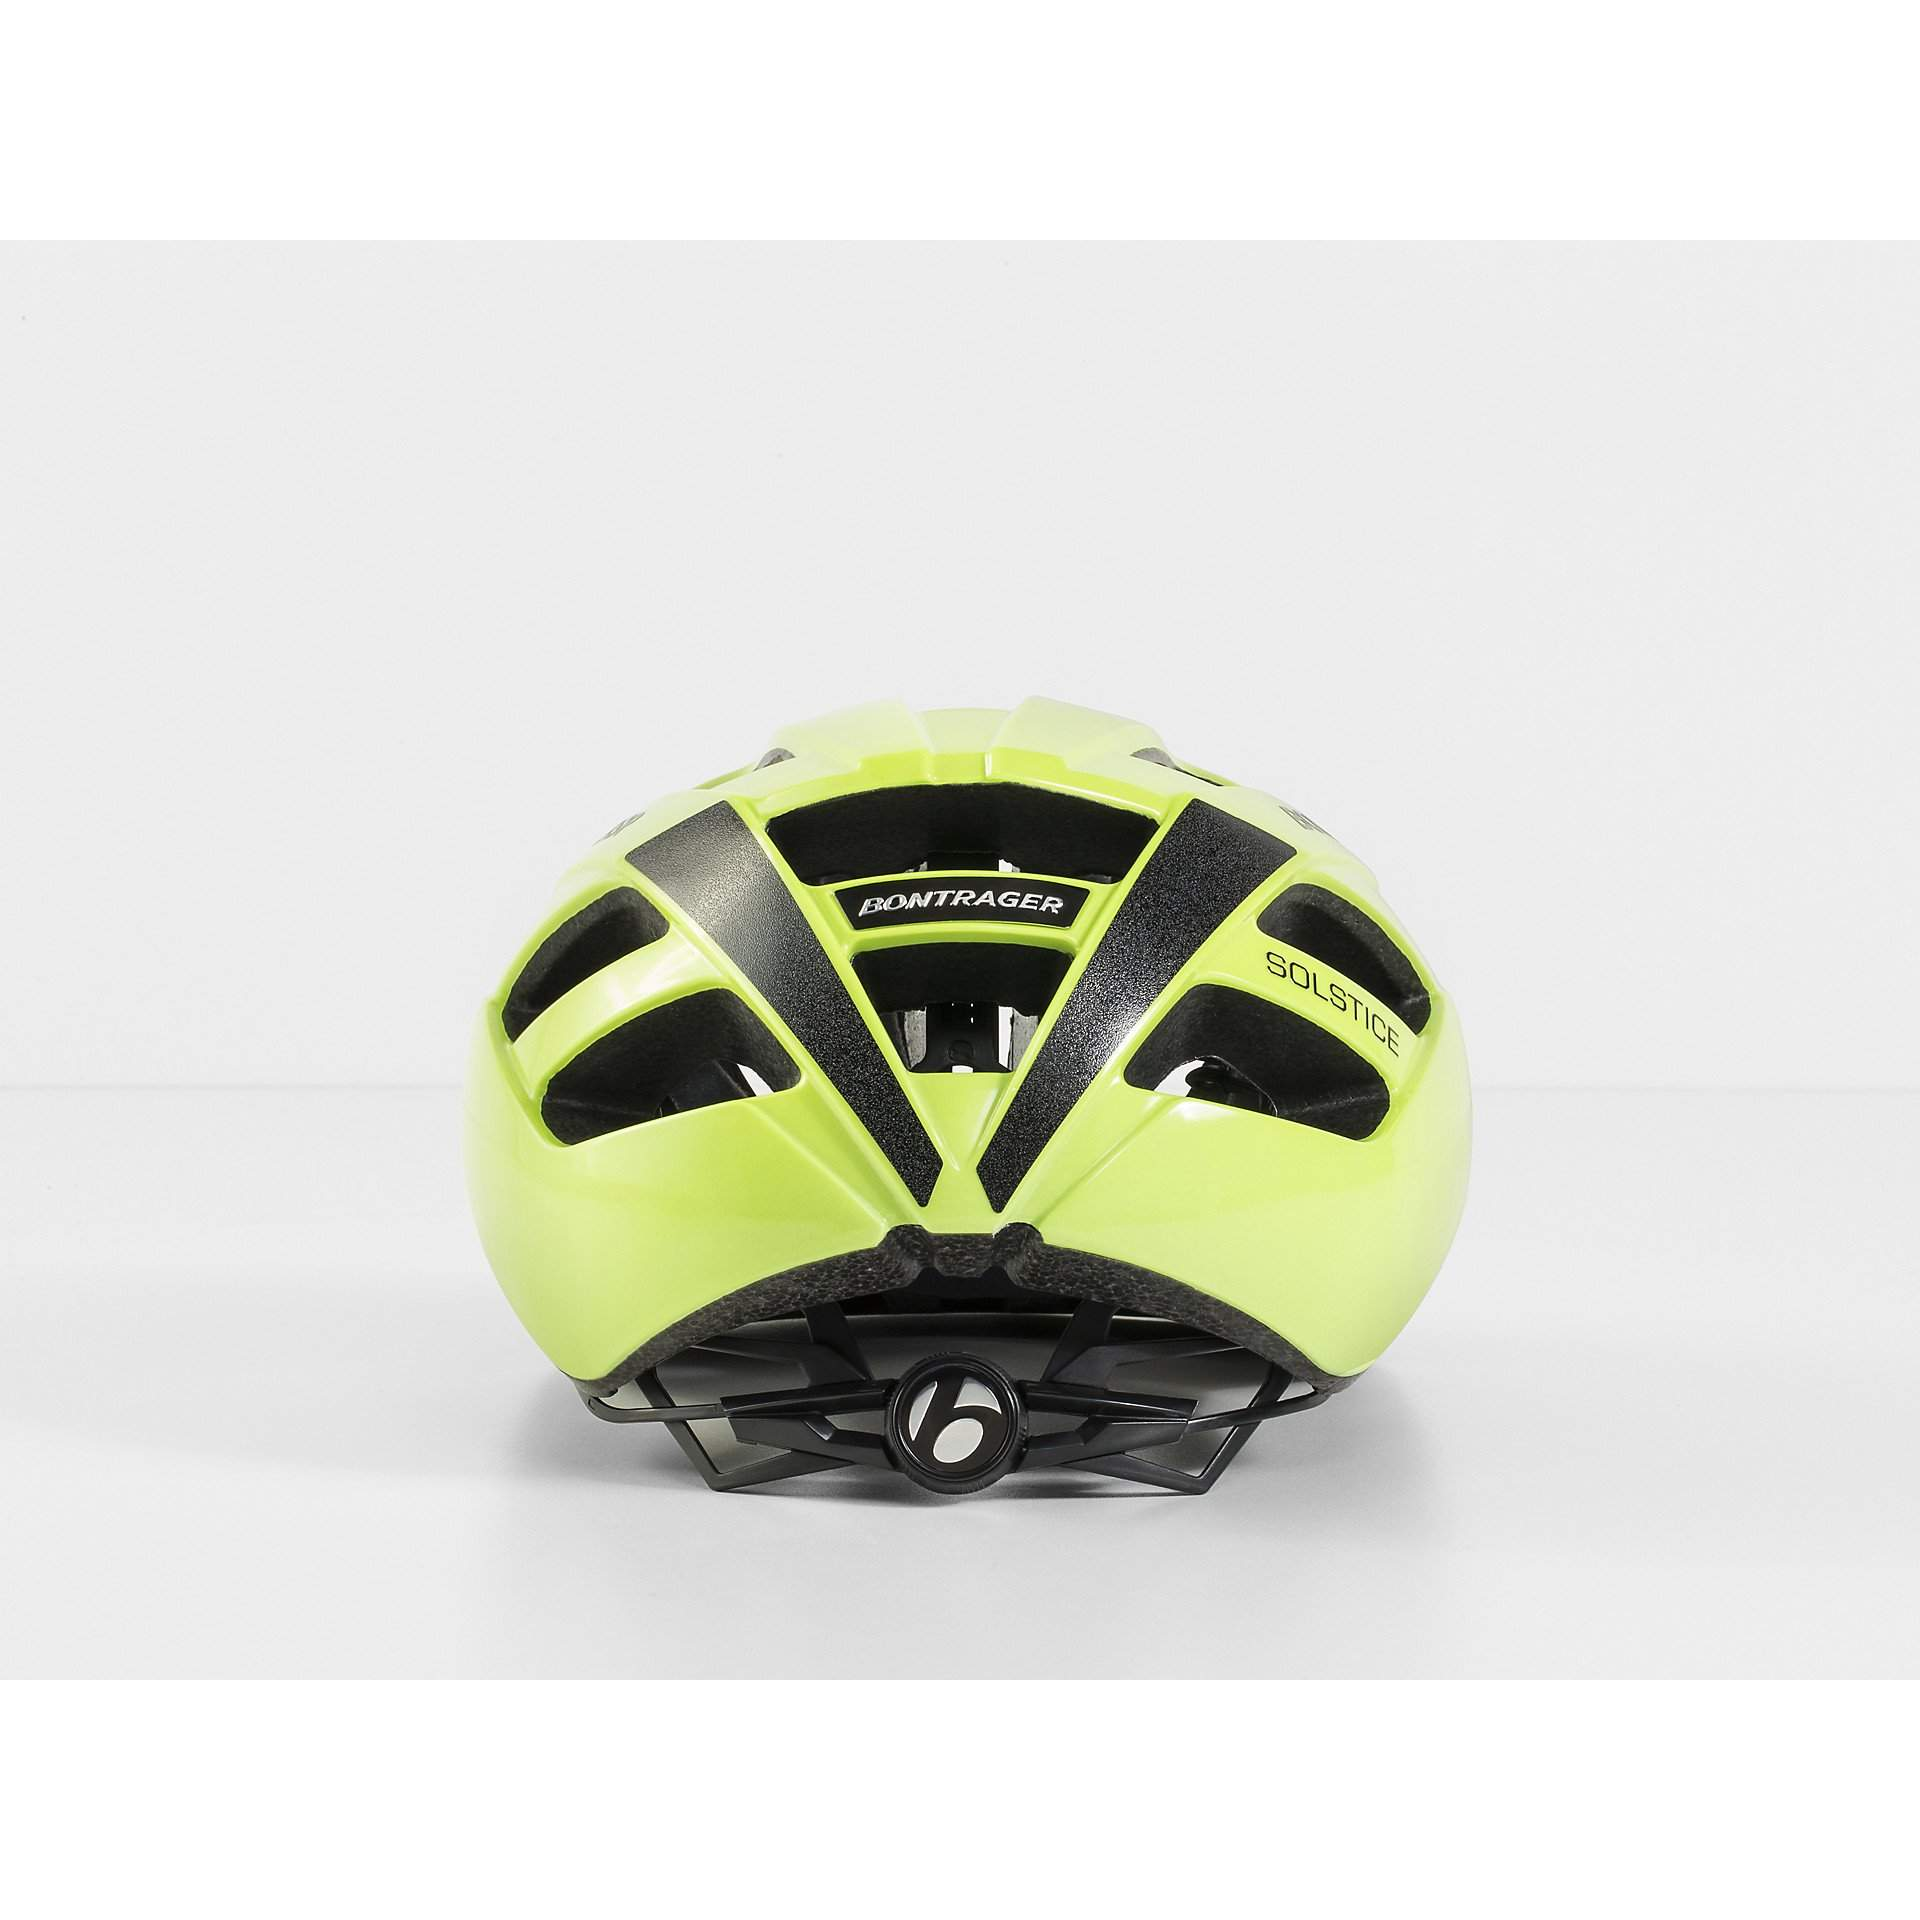 KASK ROWEROWY BONTRAGER SOLSTICE VISIBLE YELLOW Z TYŁU